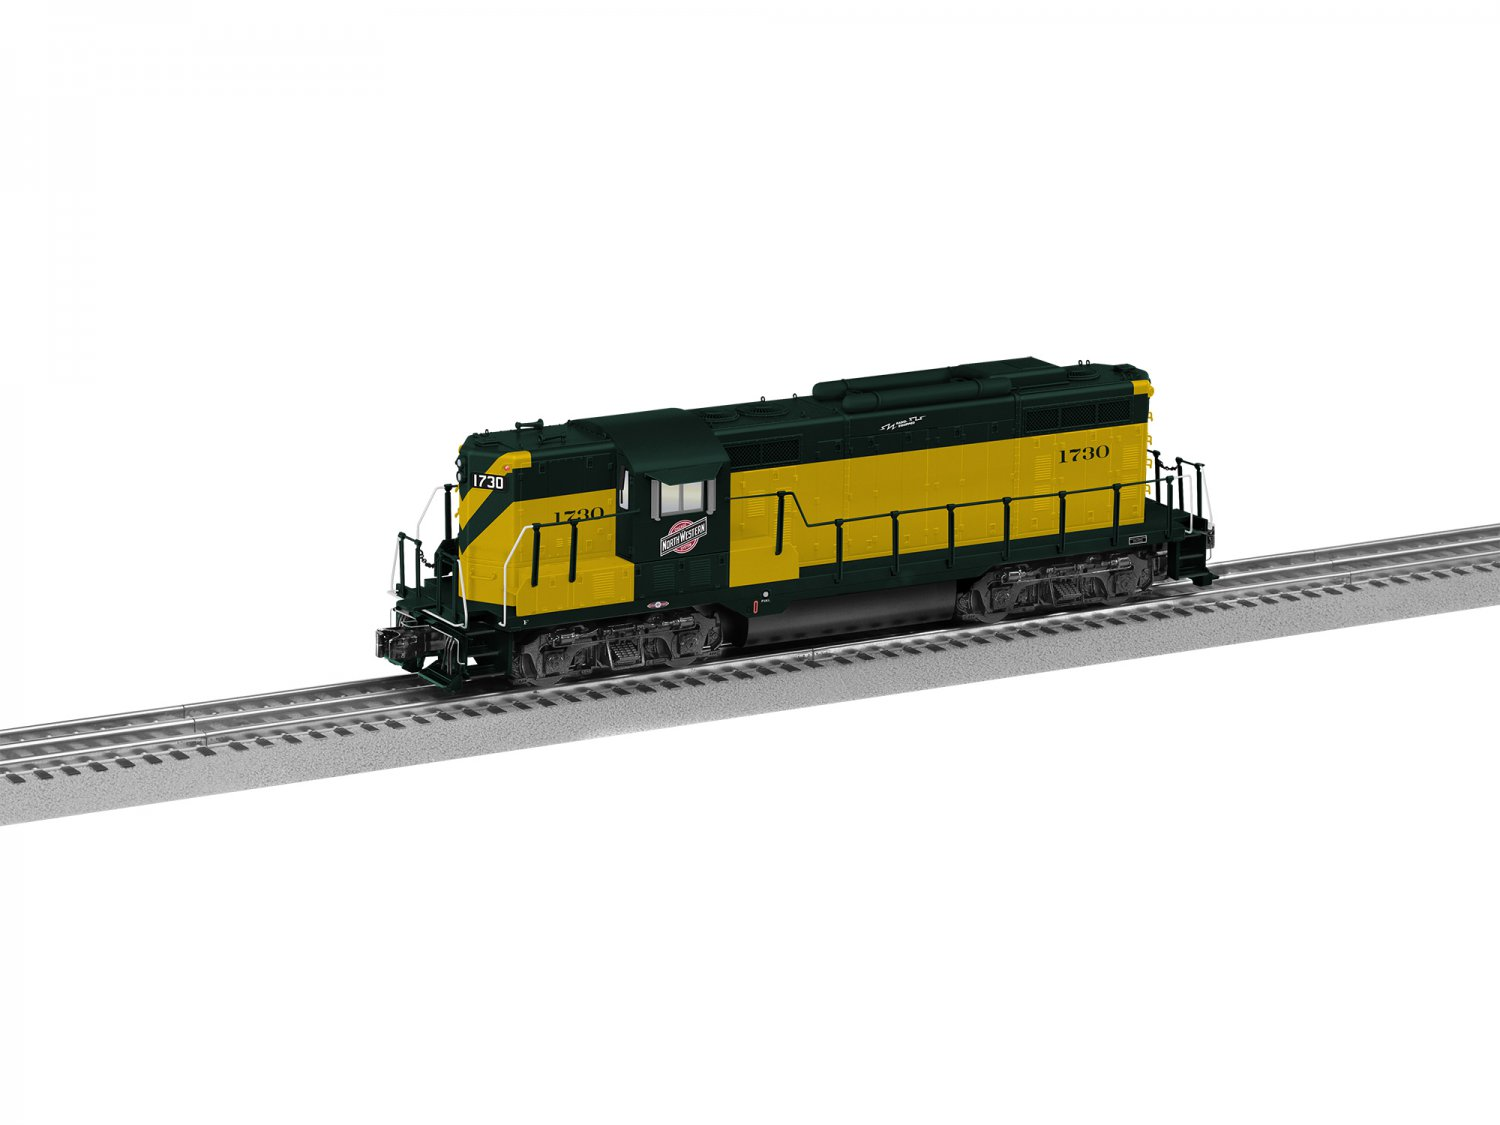 Lionel 6-84273 CHICAGO & NORTH WESTERN TORPEDO LEGACY GP9 #1730 Mint In box